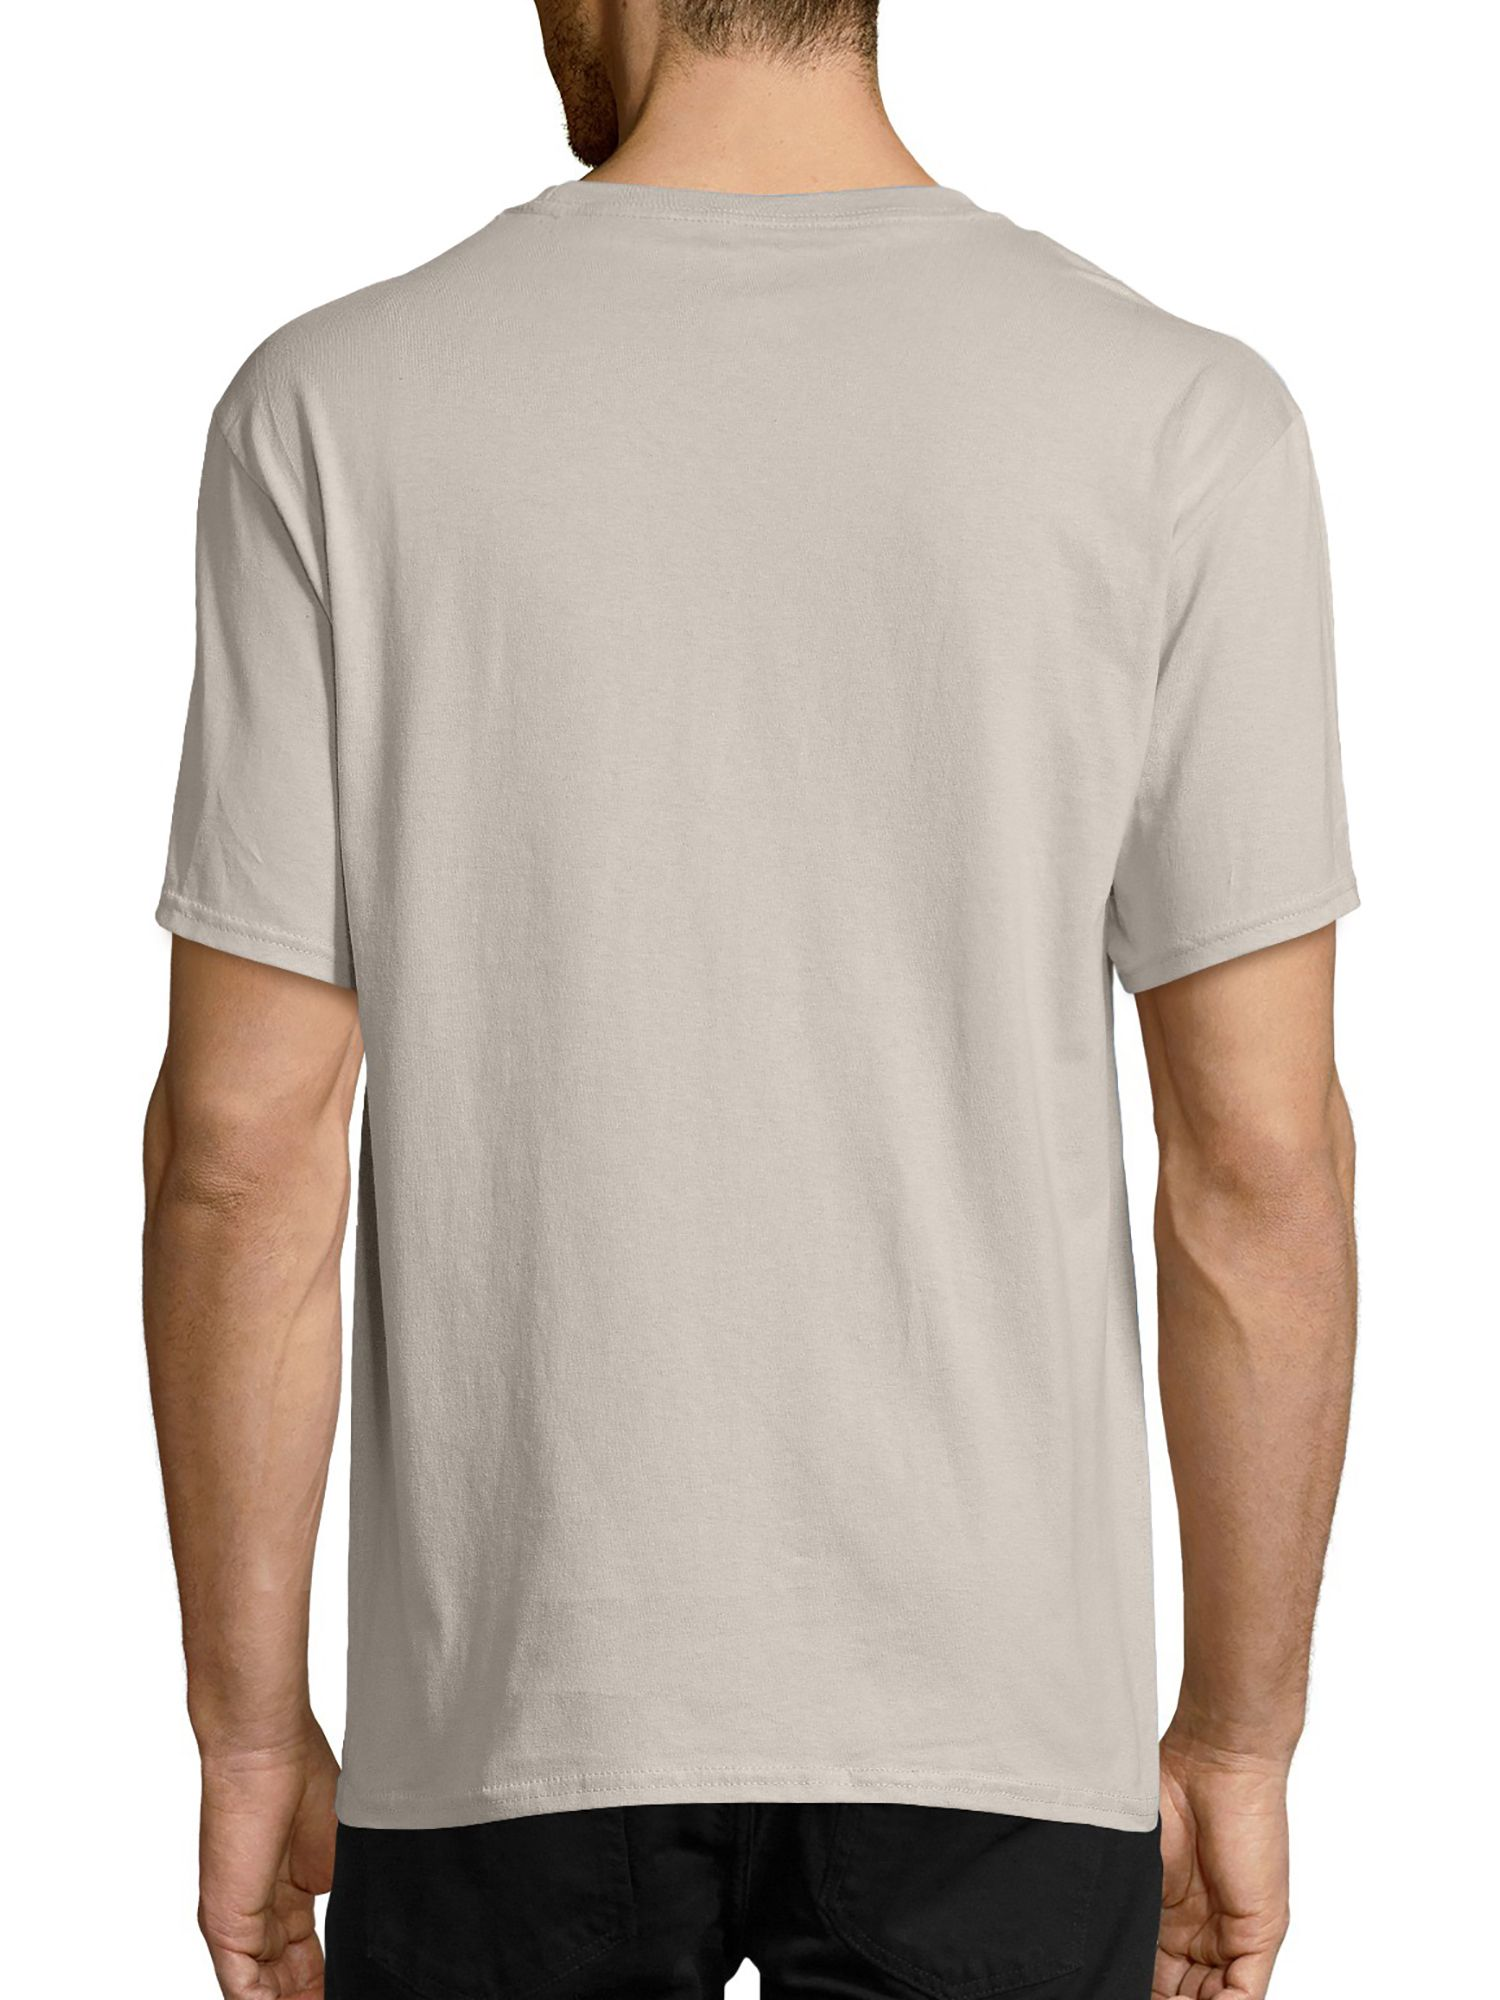 Hanes Men's and Big Men's Tagless Short Sleeve Tee, Up To